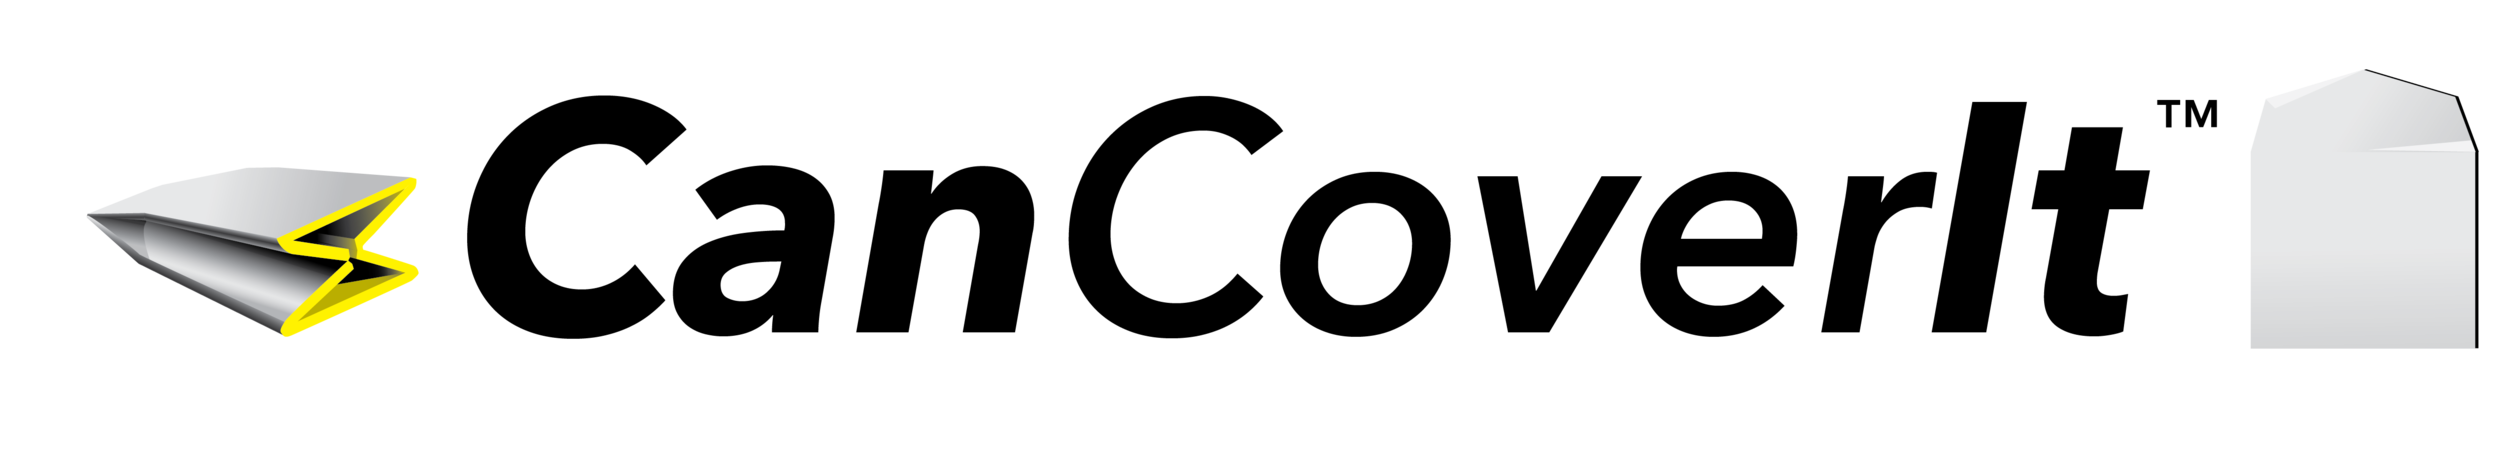 cancoveritsymbol-02.png